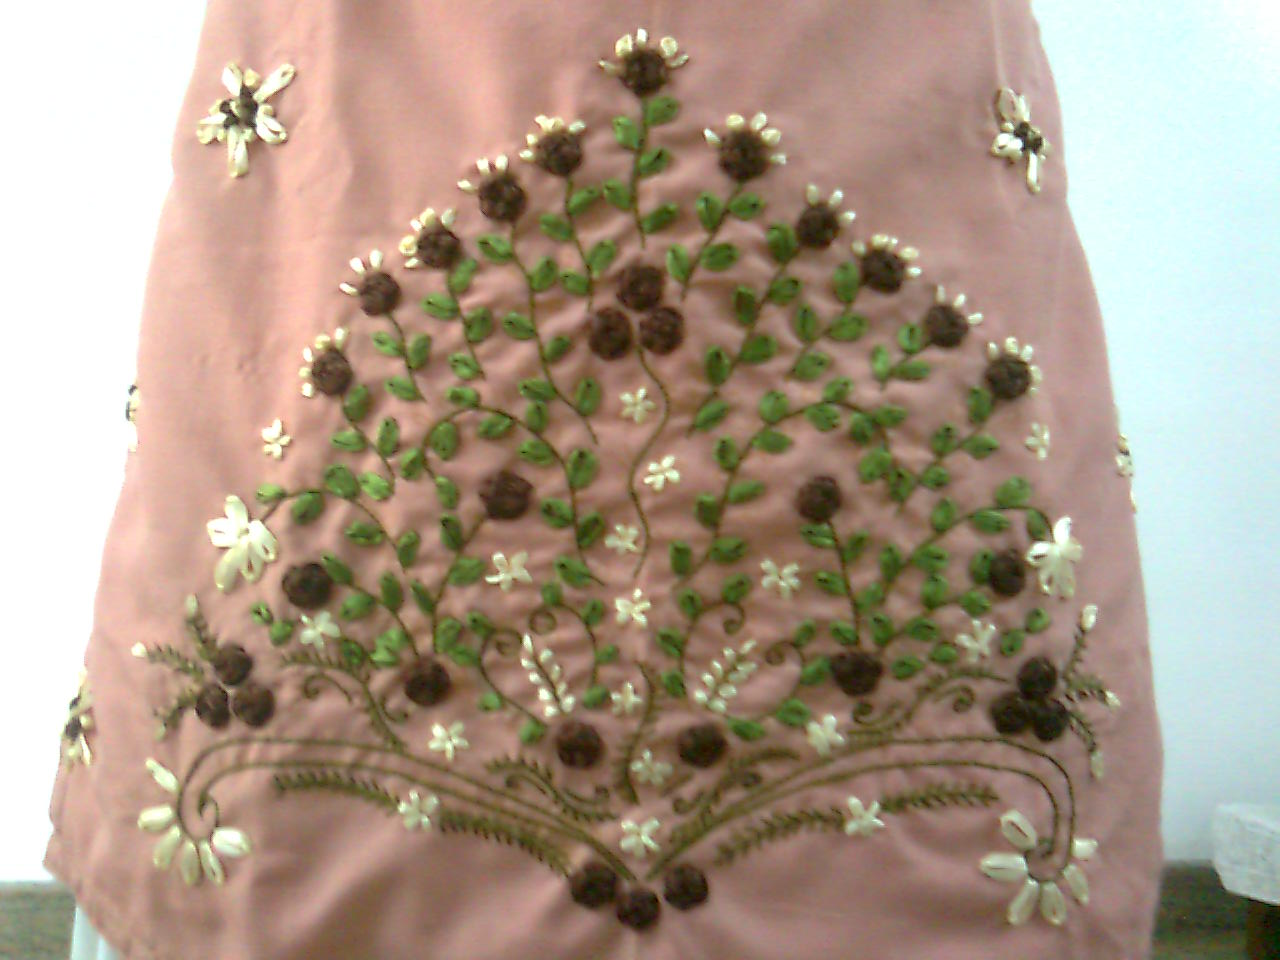 Ribbon Work Designs http://candycraft.blogspot.com/2011/01/ribbon-work-salwar_11.html